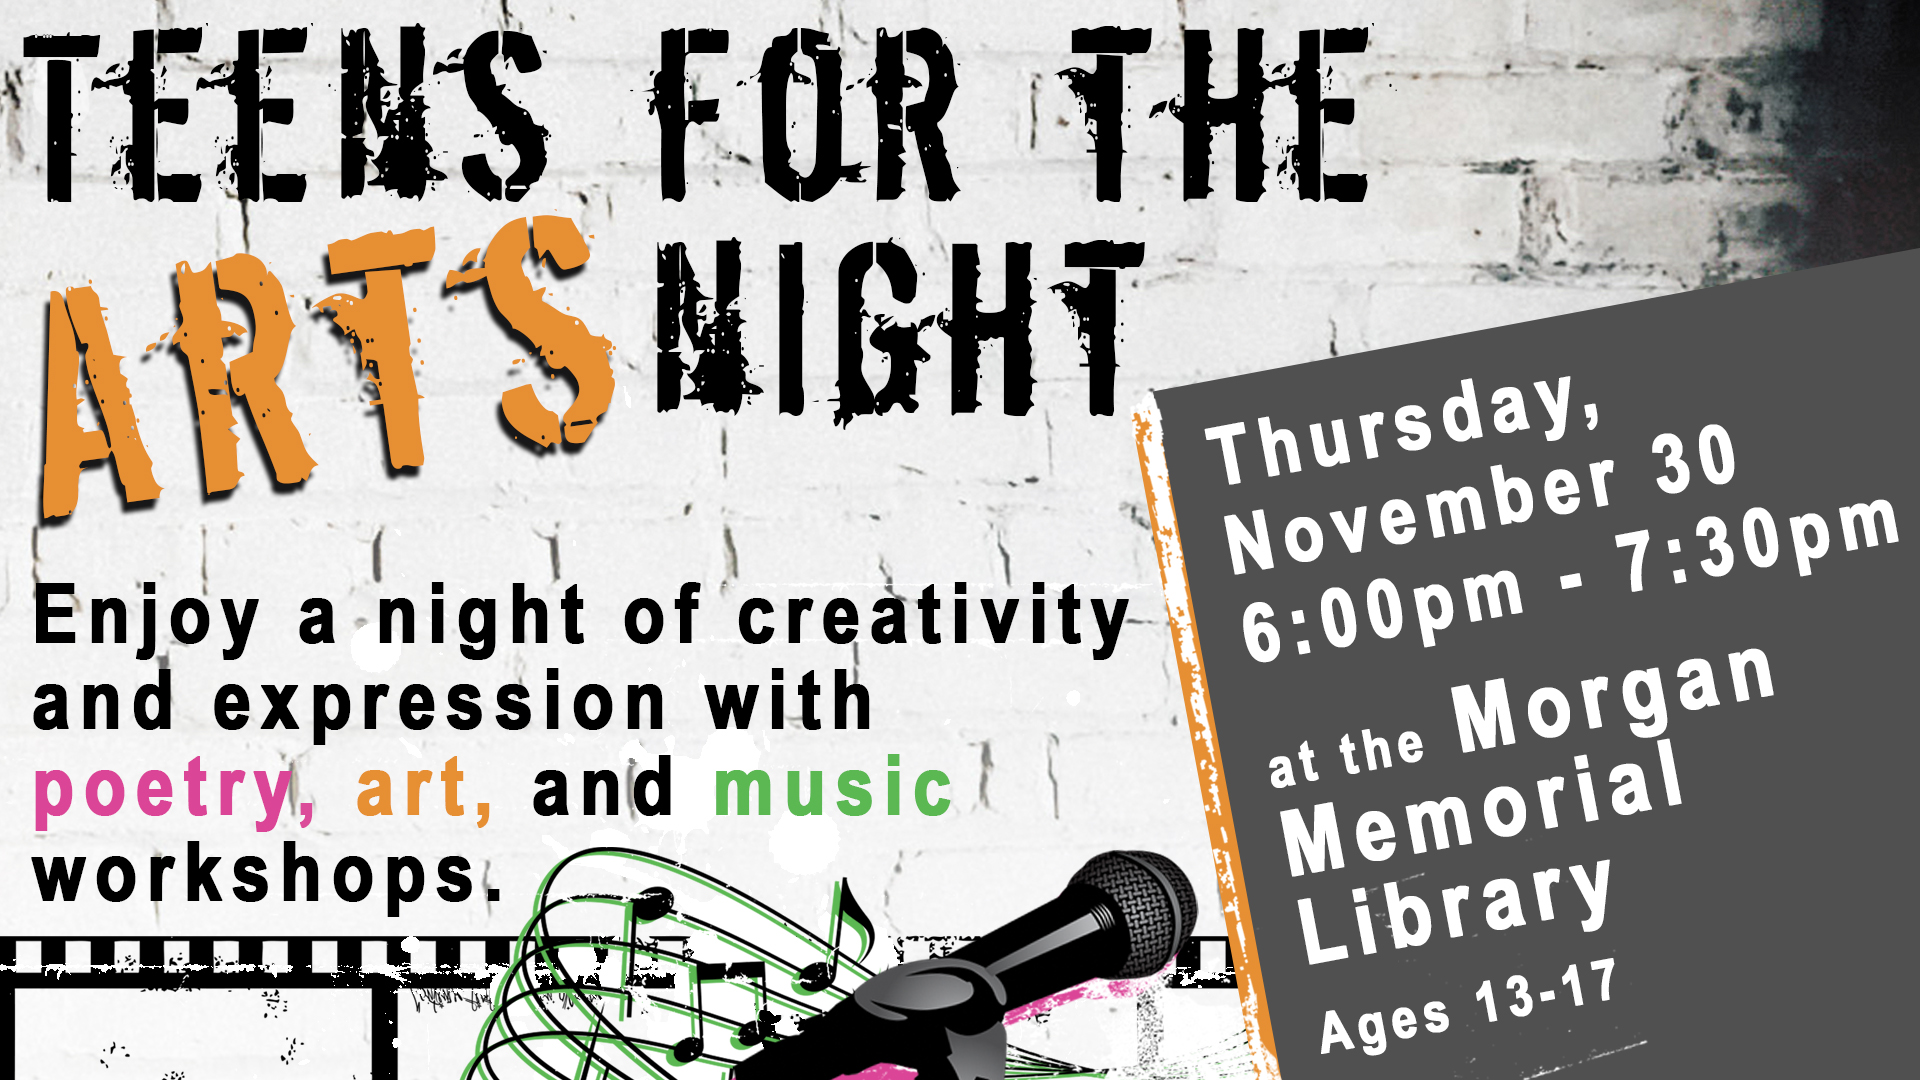 Teens for the arts night